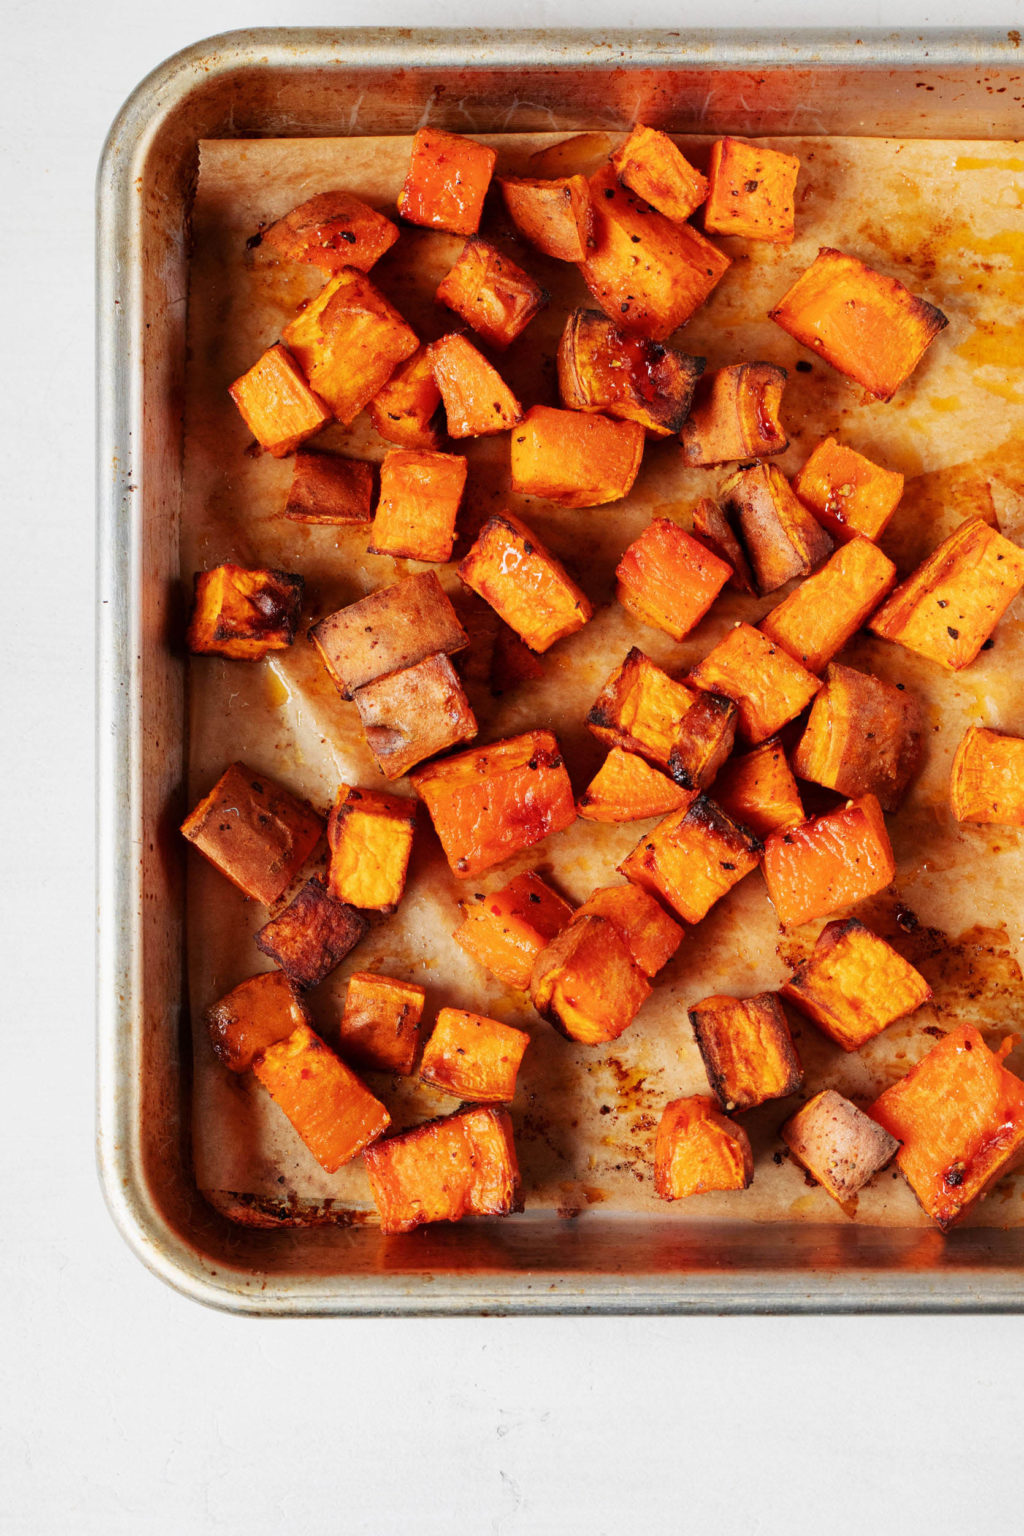 A lined sheet pan has been covered with cubes of roasted sweet potato.